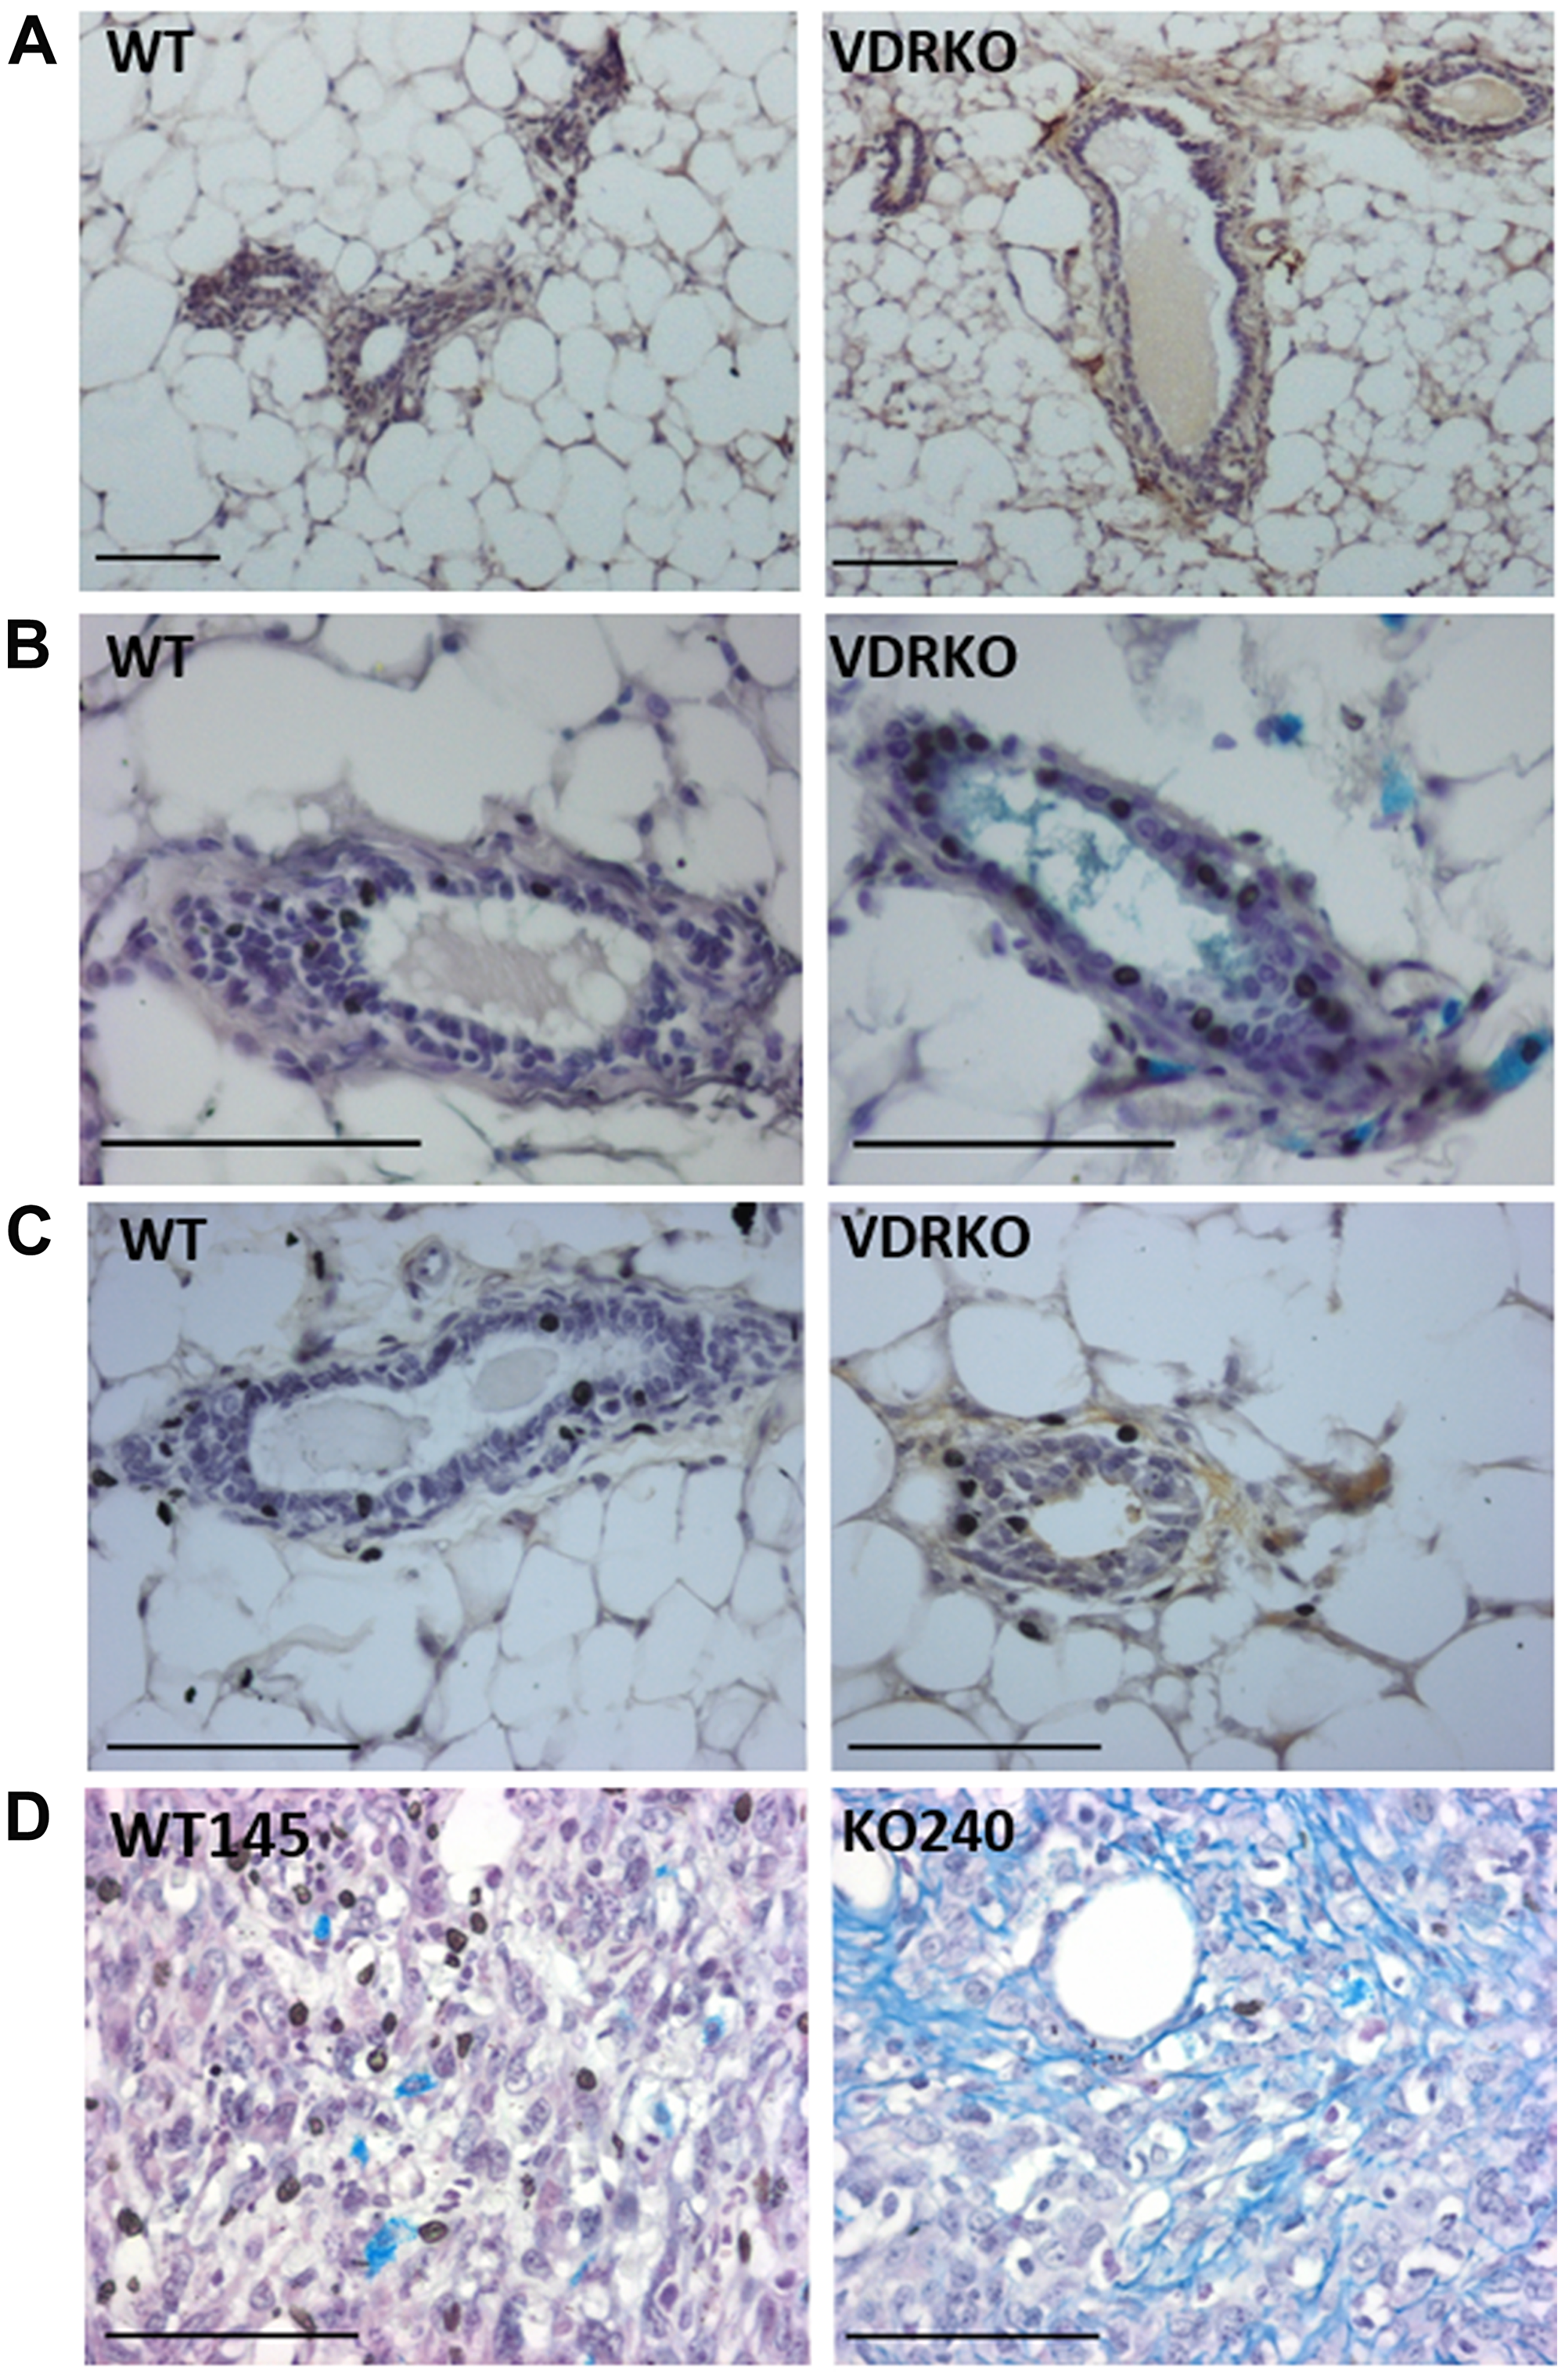 HAS2, glycosaminoglycans and HA localization in wild-type and VDRKO mice.